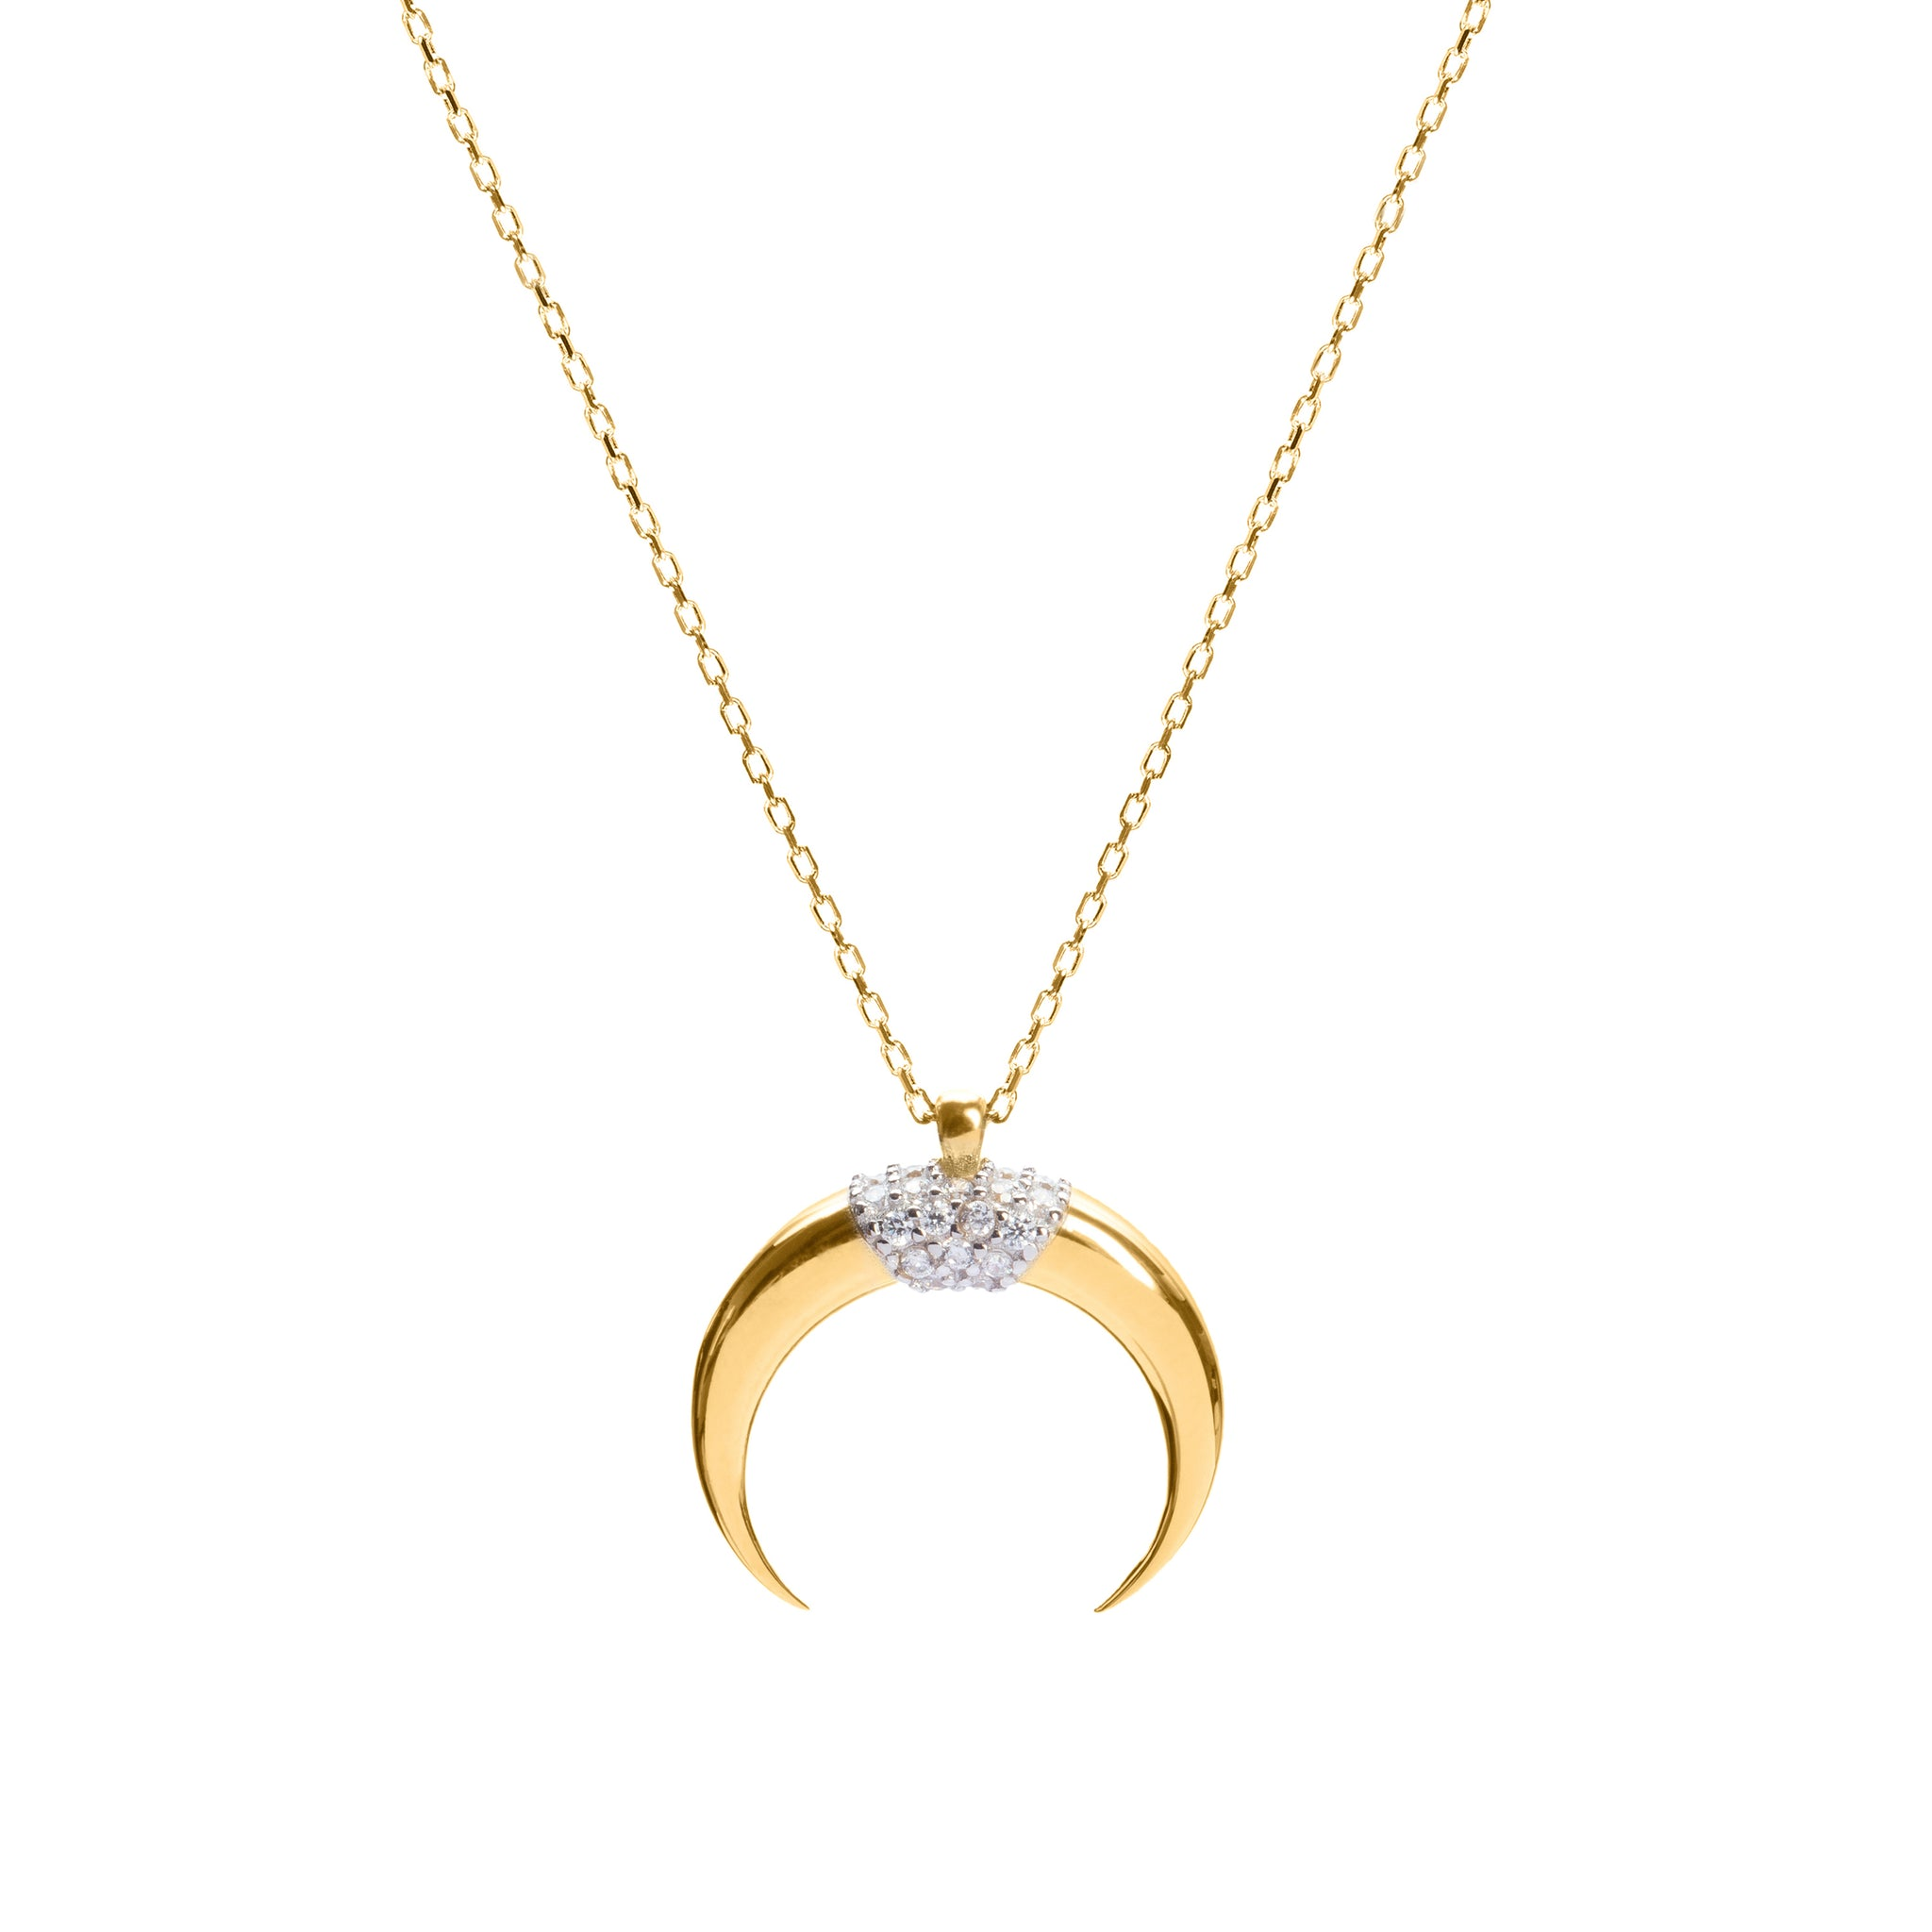 Genevieve gold necklace